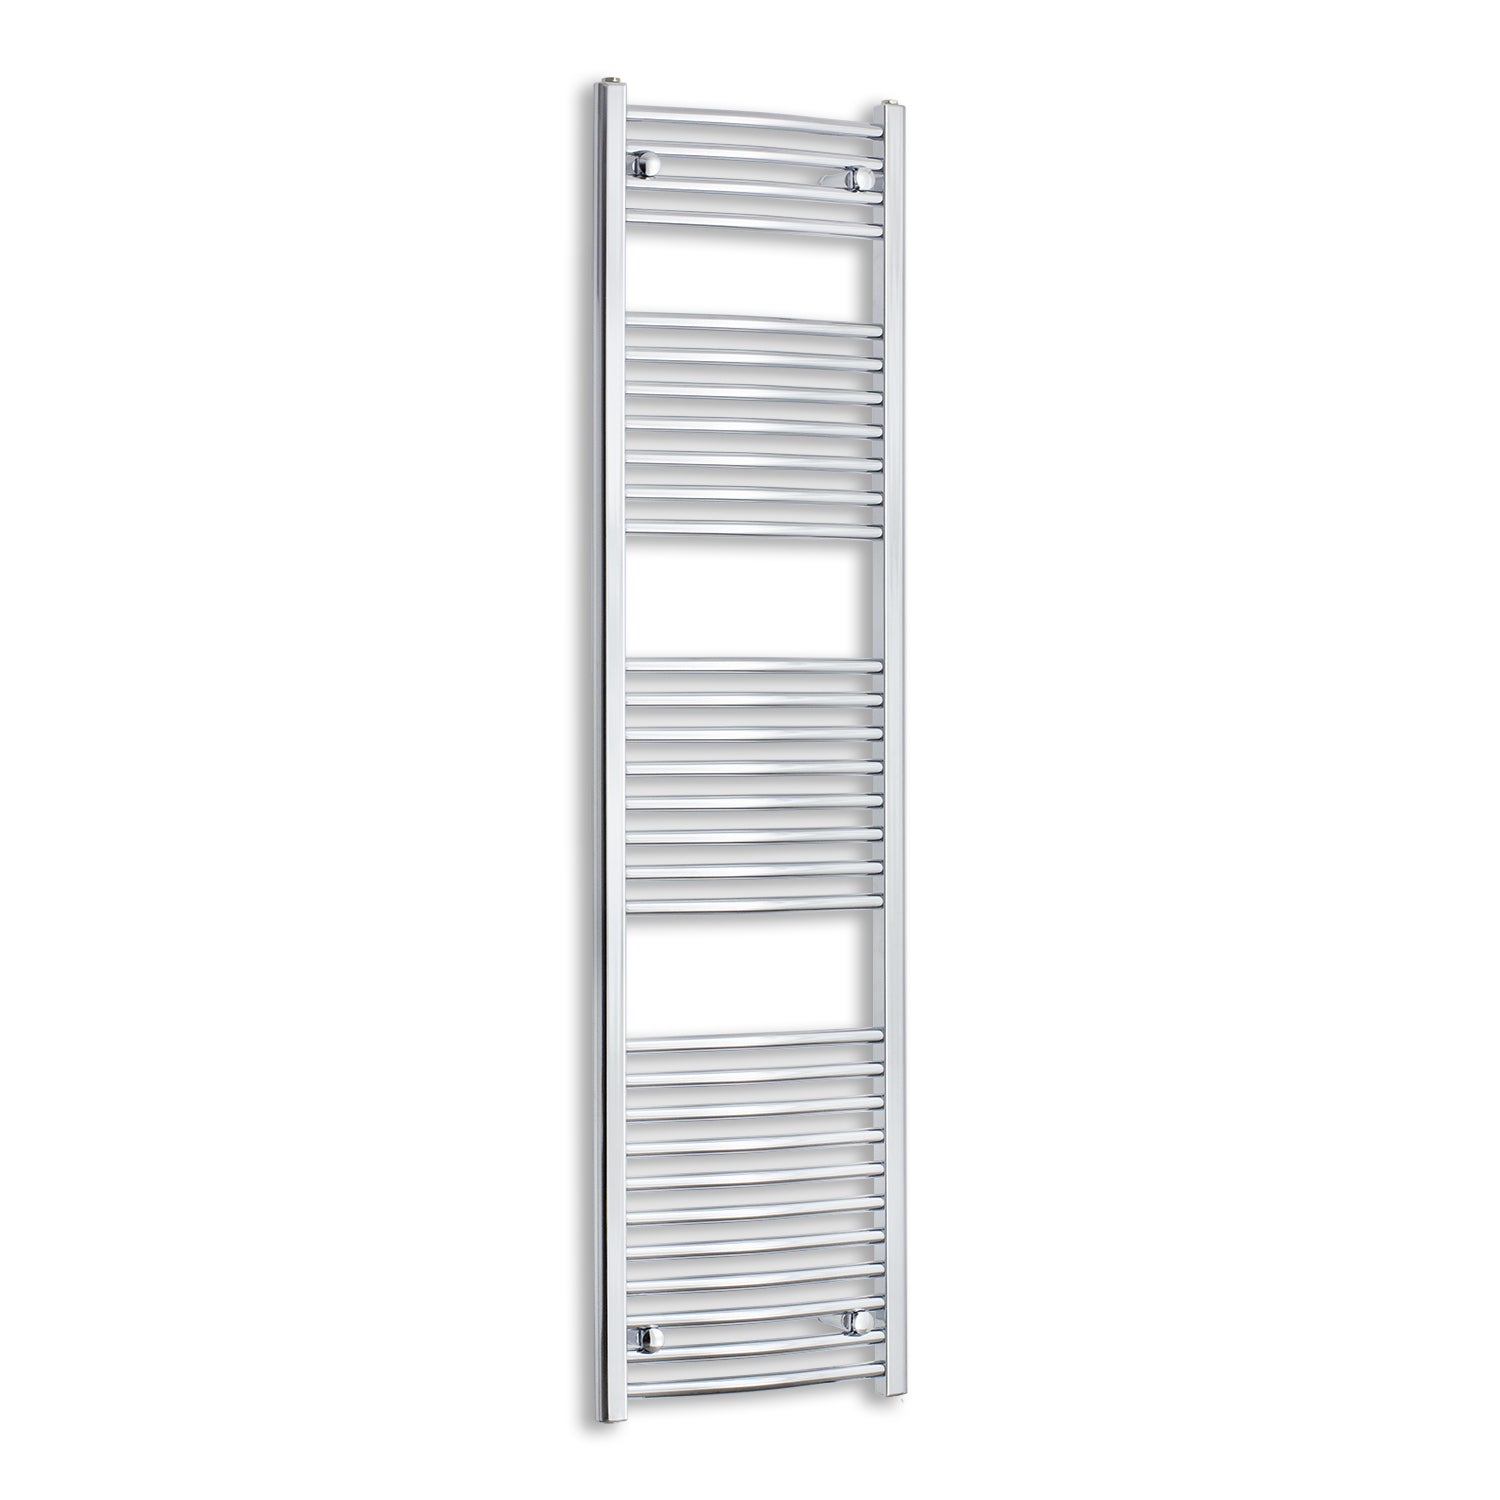 450mm Wide 1700mm High Curved Chrome Heated Towel Rail Radiator HTR,Towel Rail Only